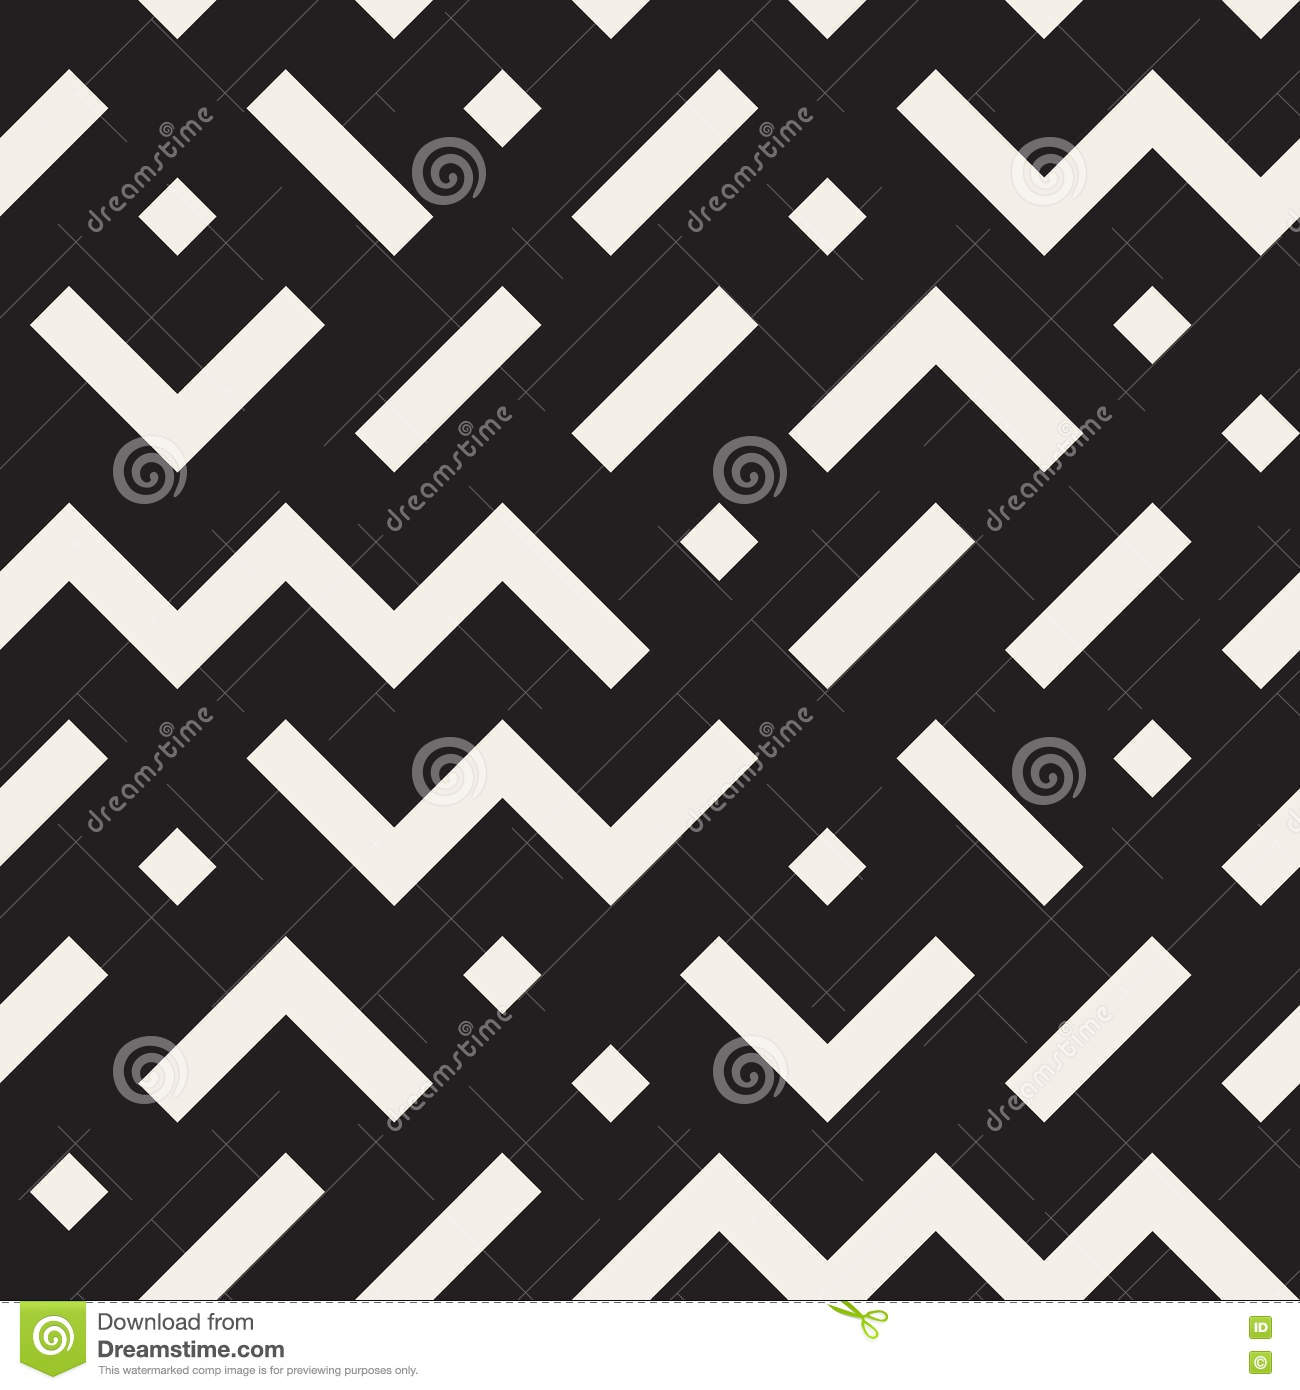 vector seamless black and white geometric shapes jumble pattern